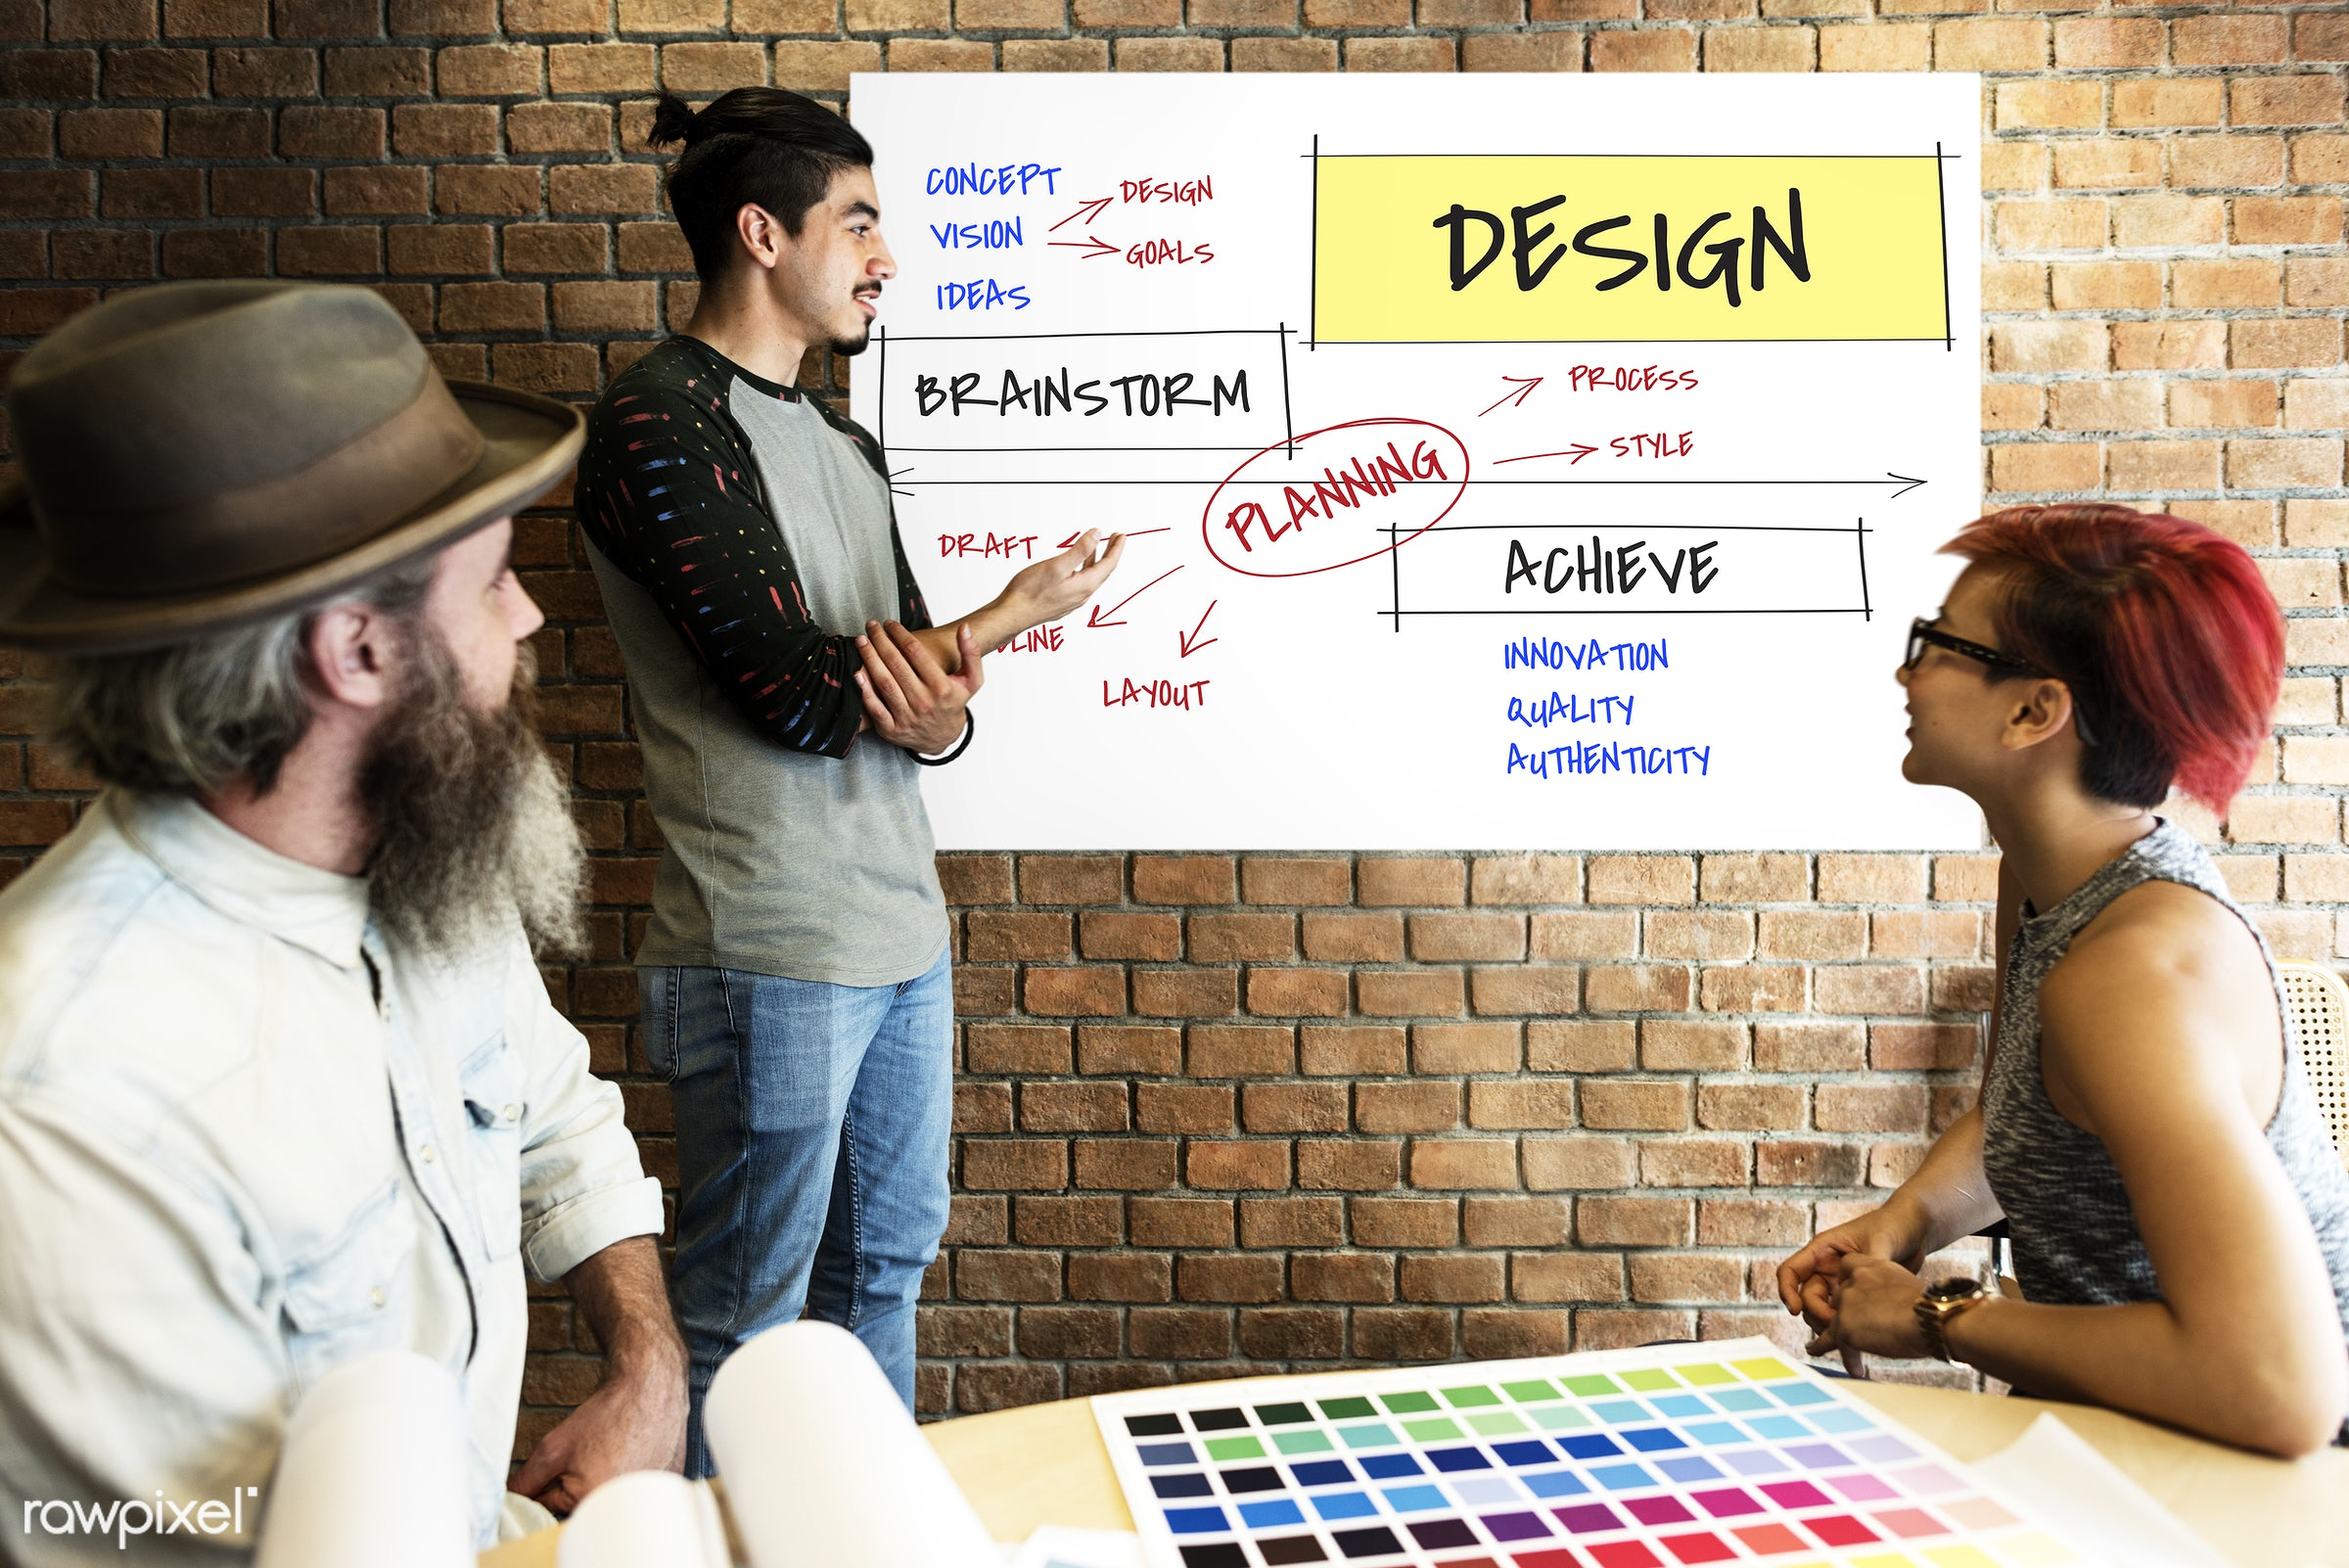 achieve, art, authenticity, beard, board, brick wall, chart, coal, color chart, colors, concept, design, discussion, draft,...